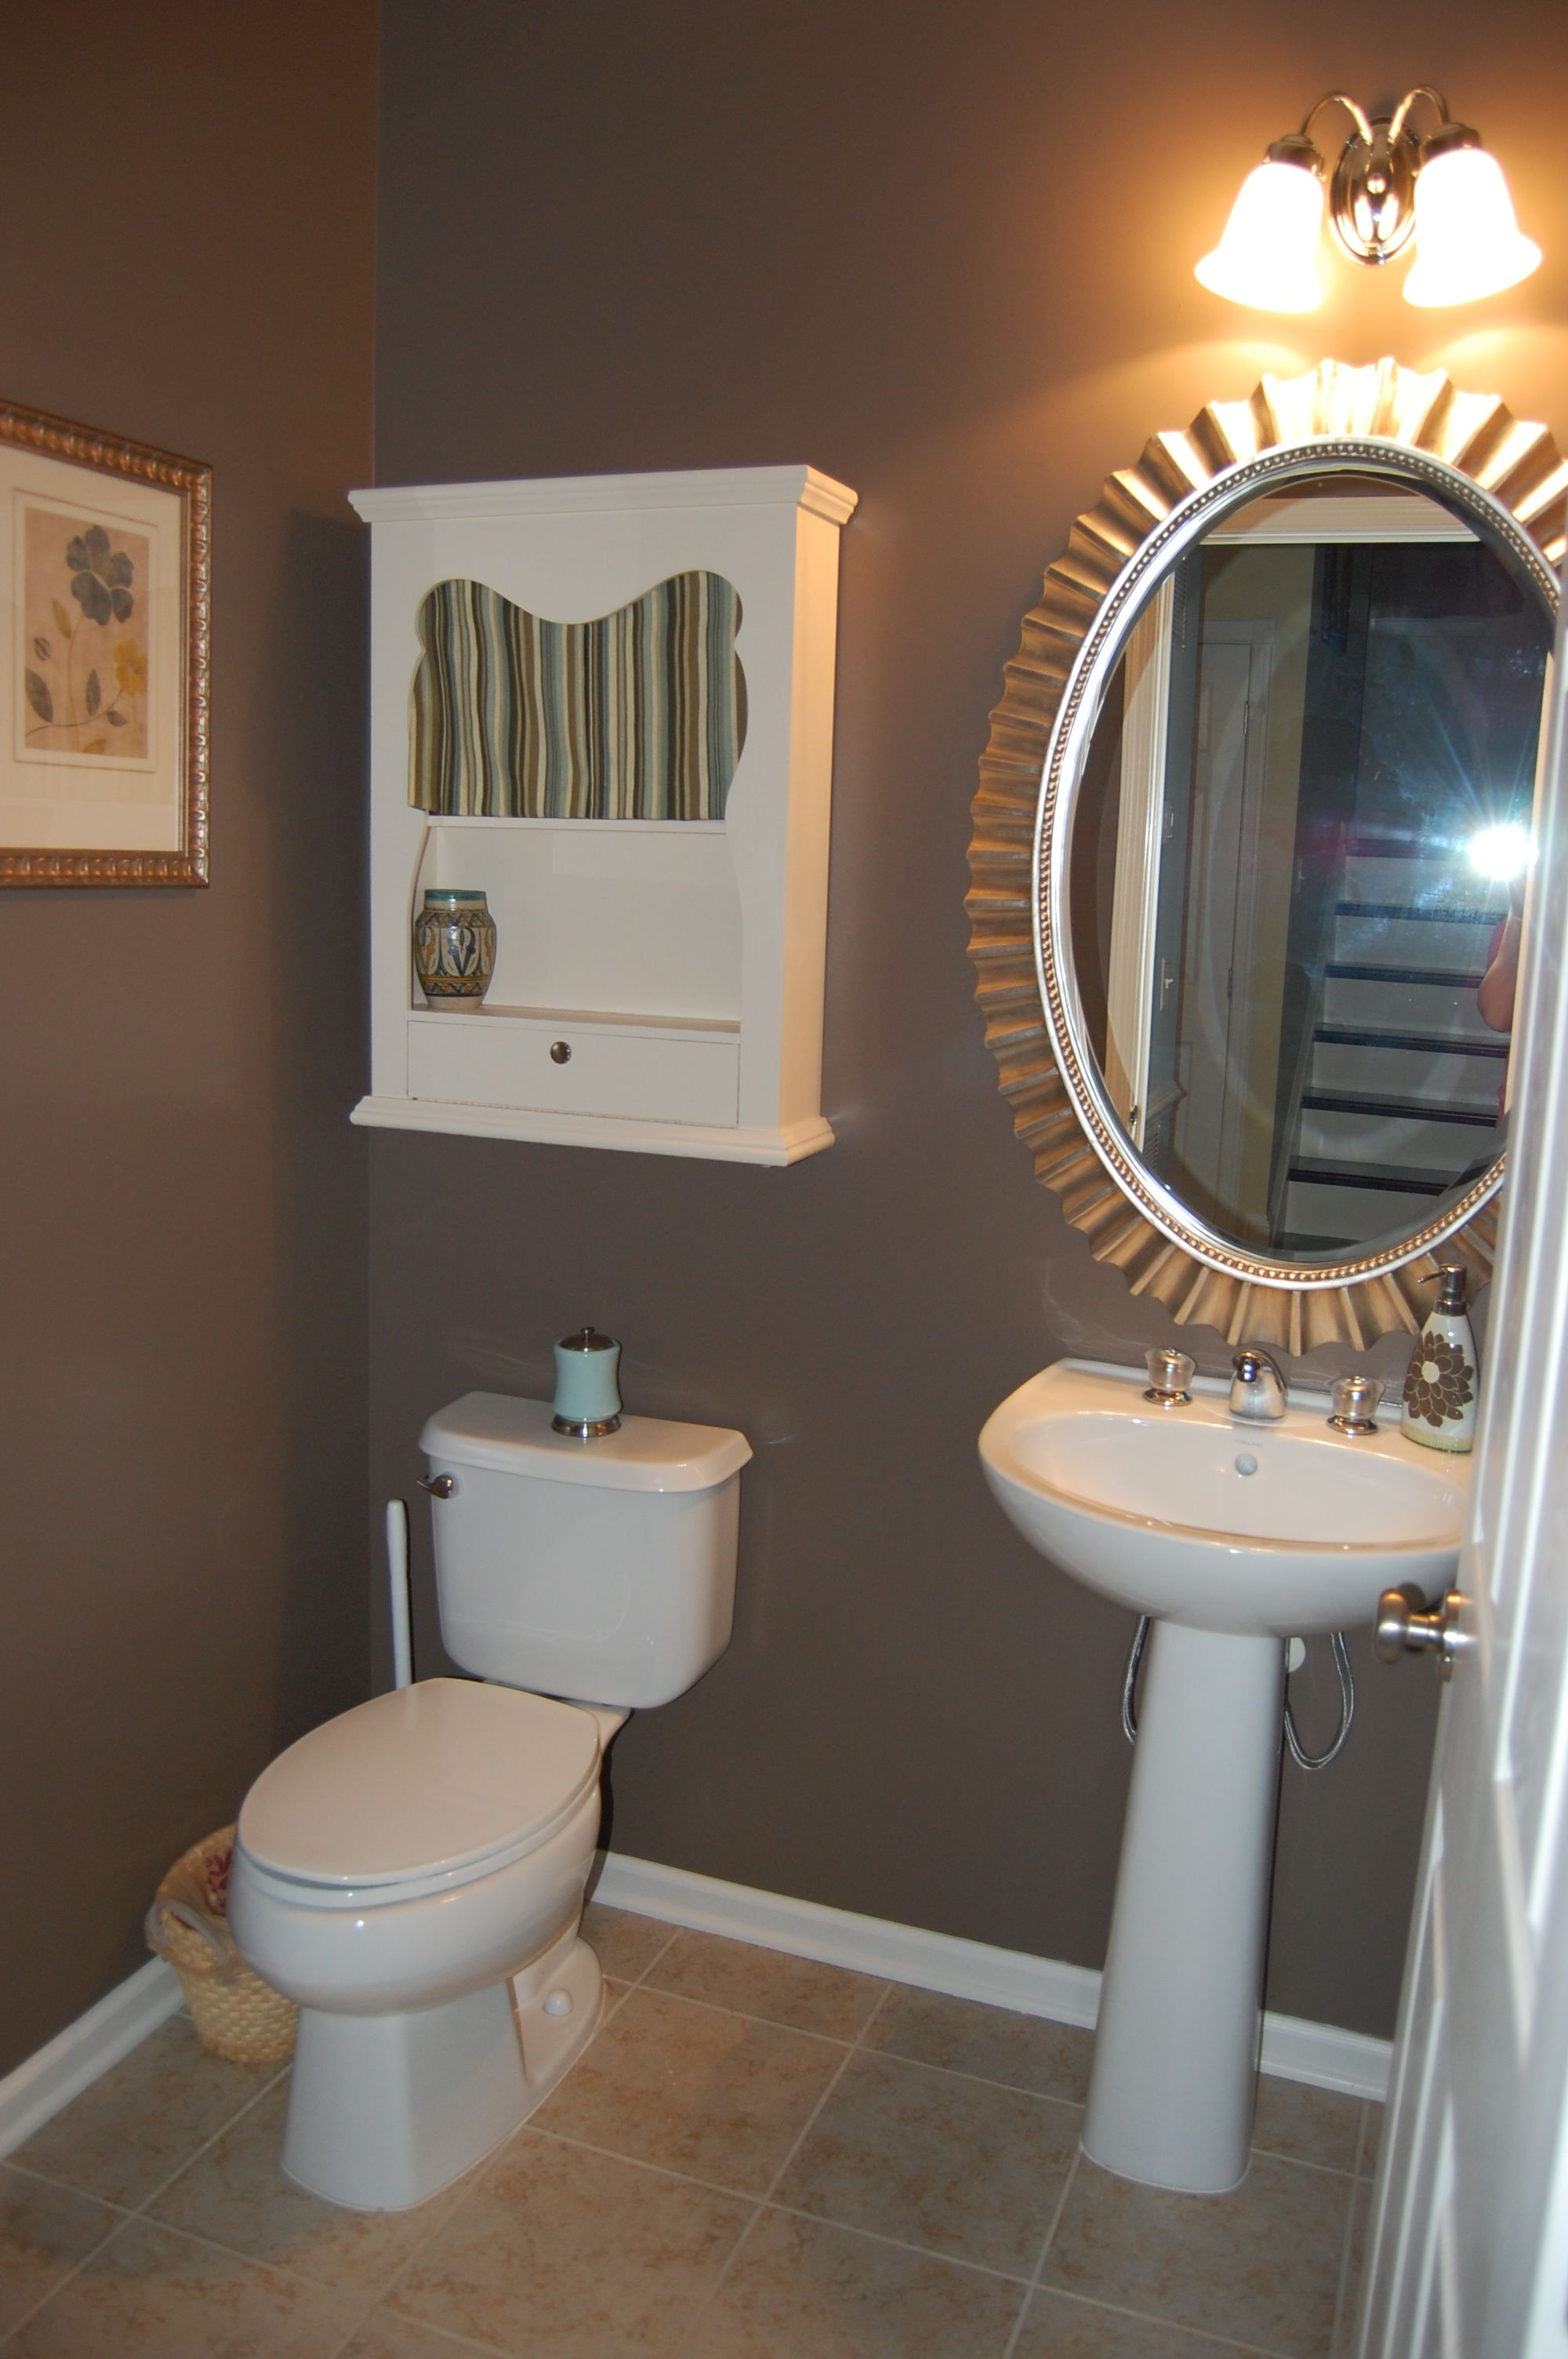 Powder room bathroom color projects pinterest like for Bathroom finishes trends